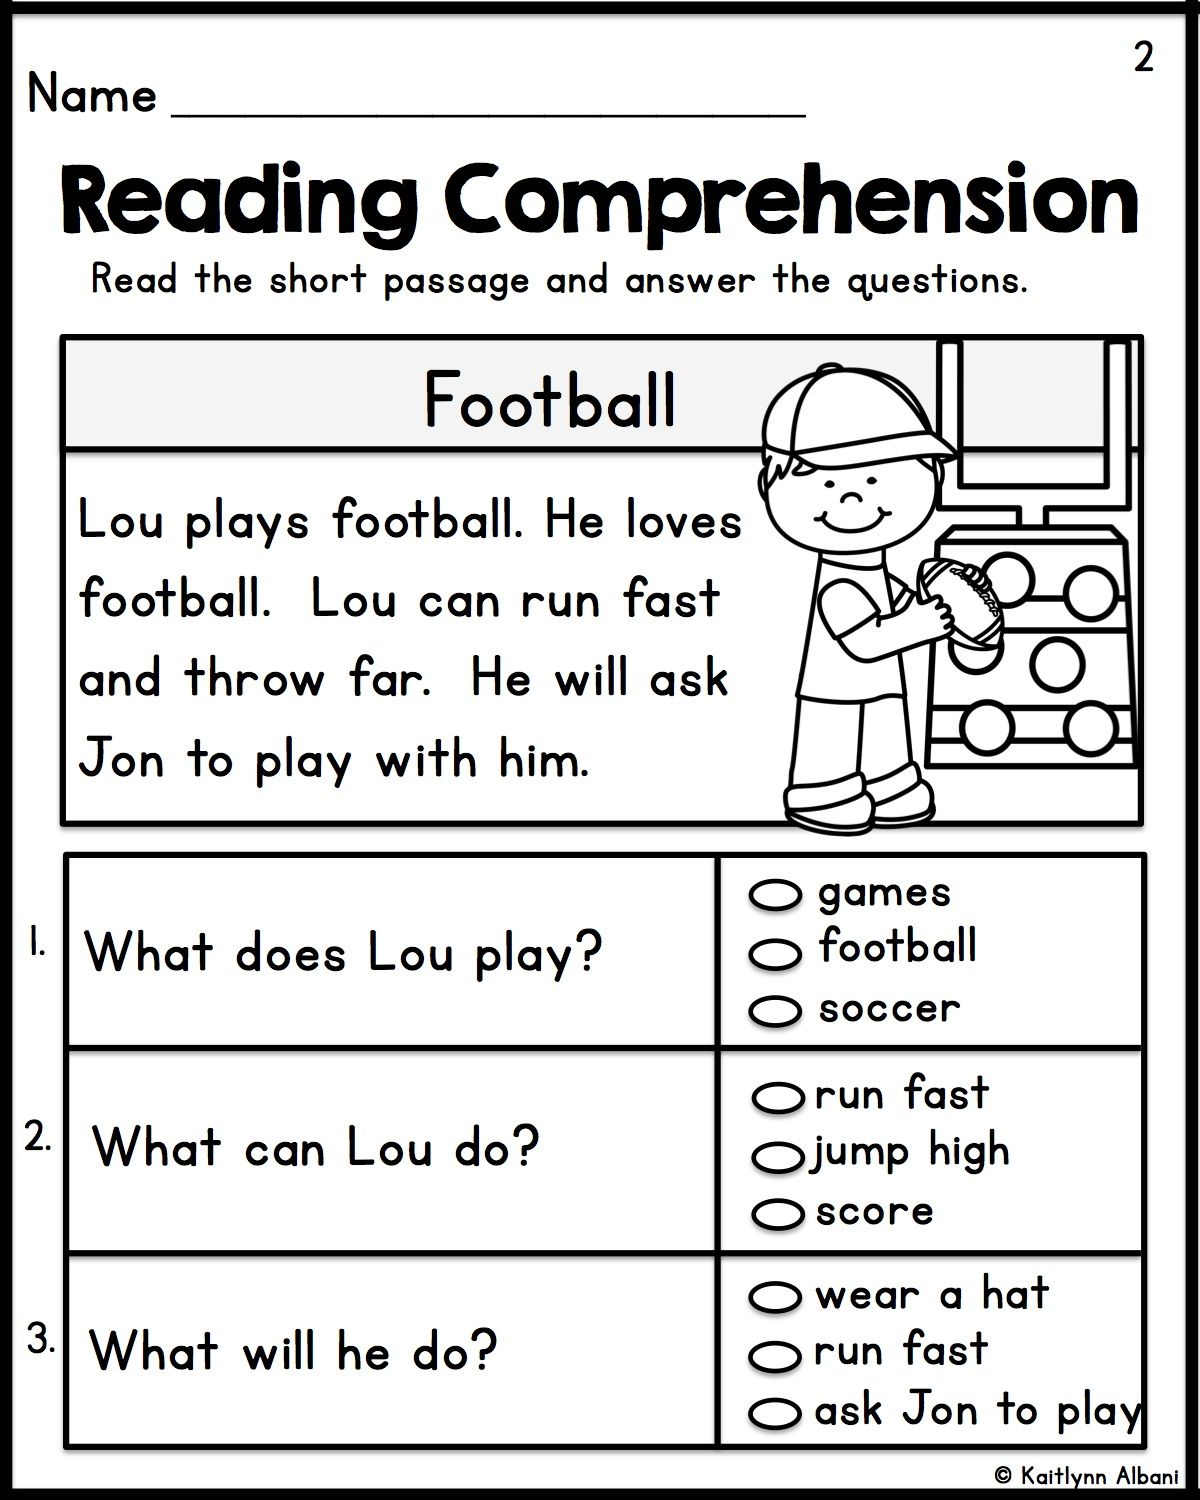 Multiple Choice Reading Comprehension For Grade 1 Pdf